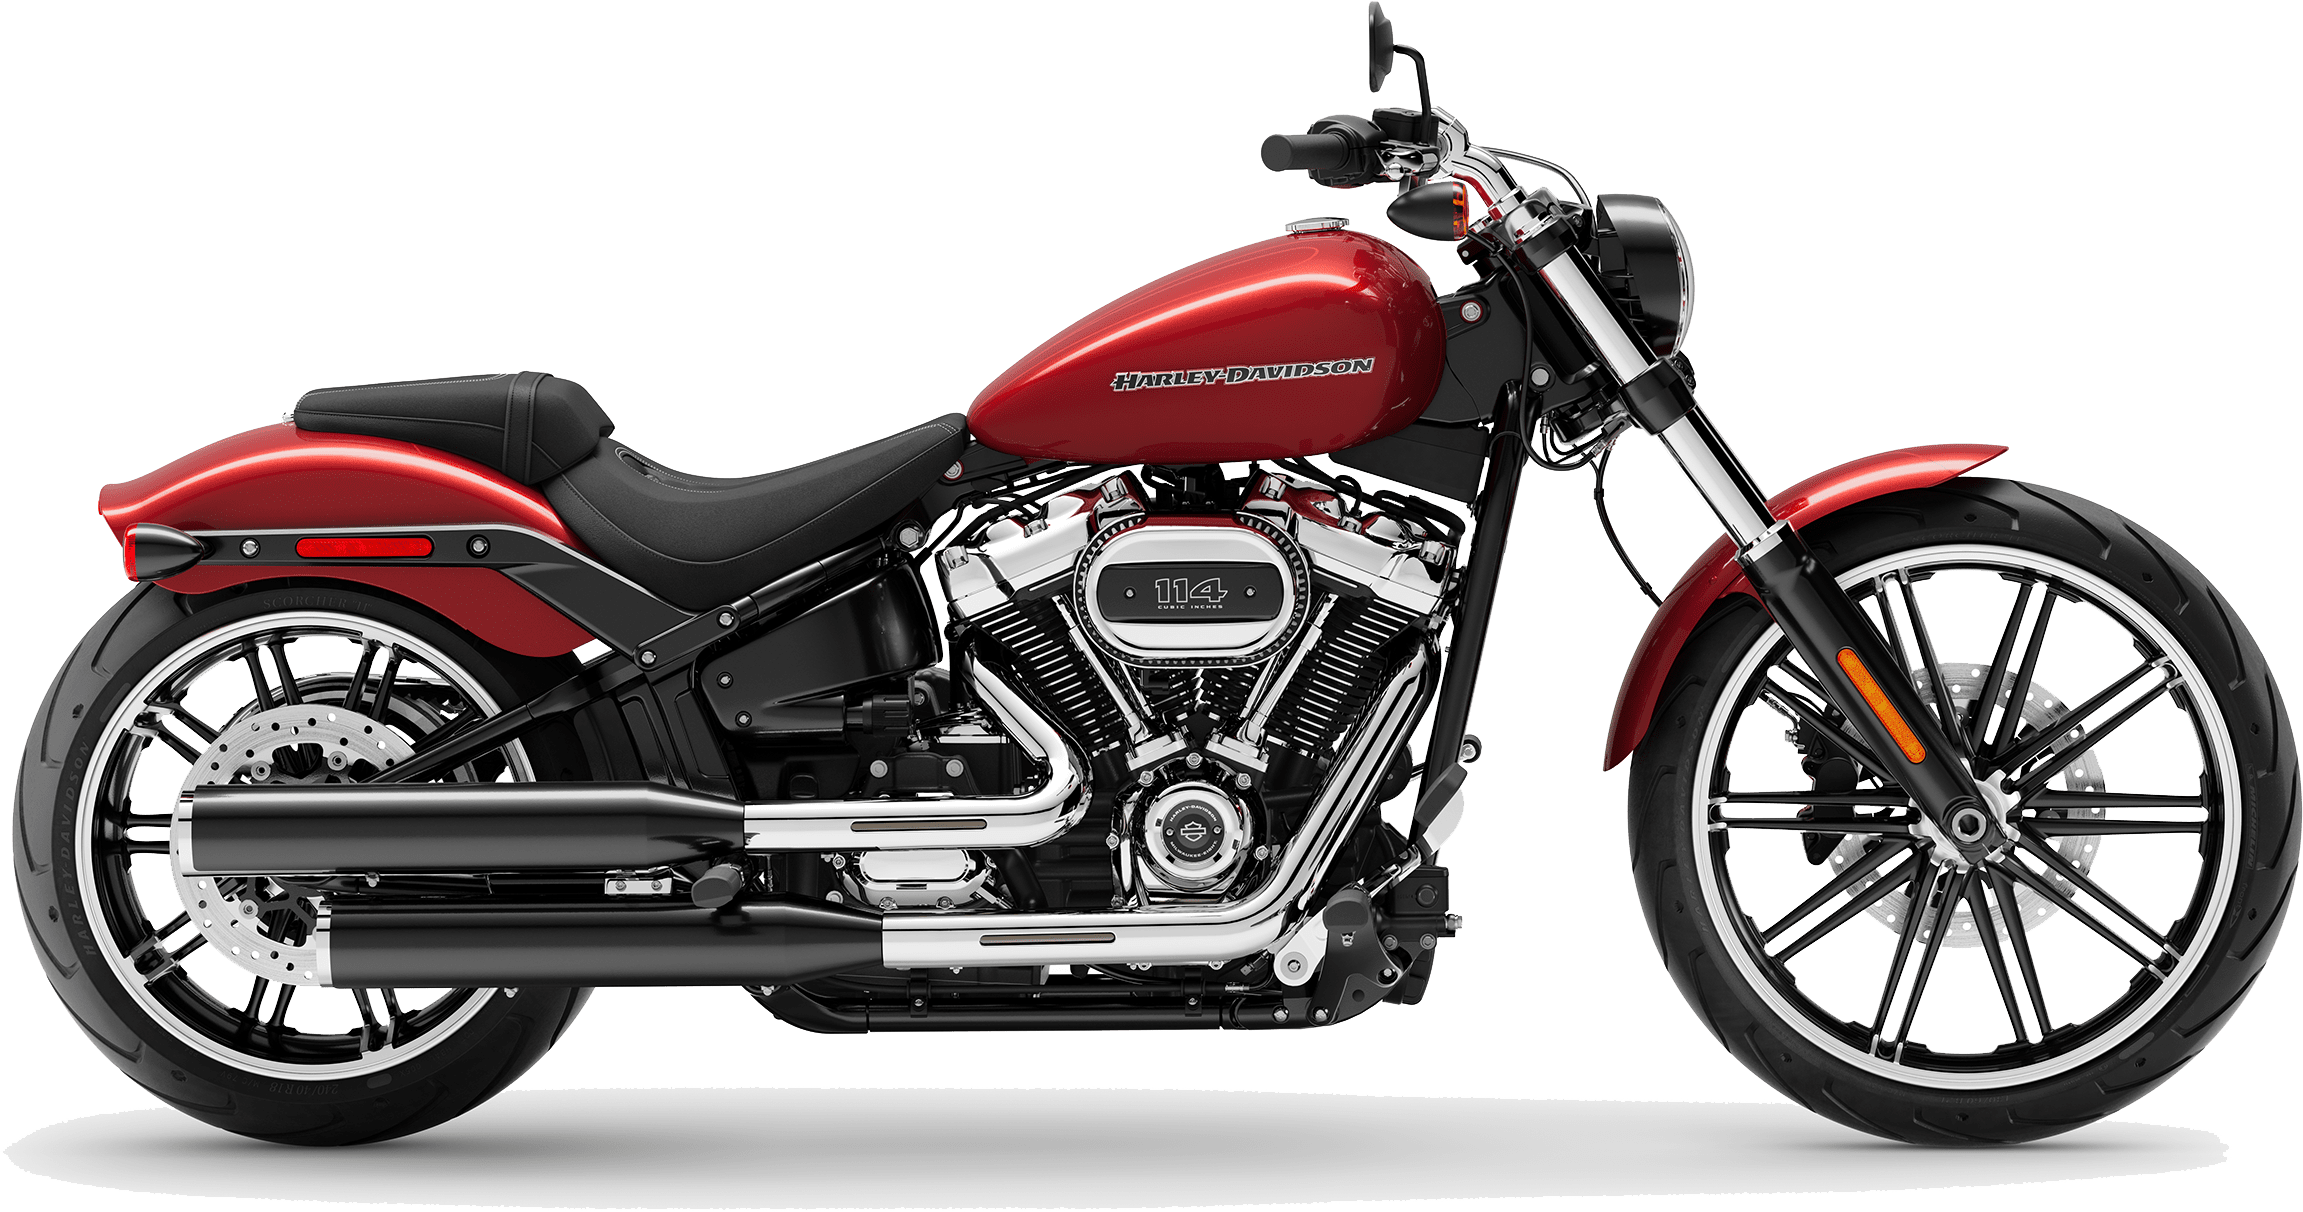 2019 Harley-Davidson Softail Breakout Wicked Red